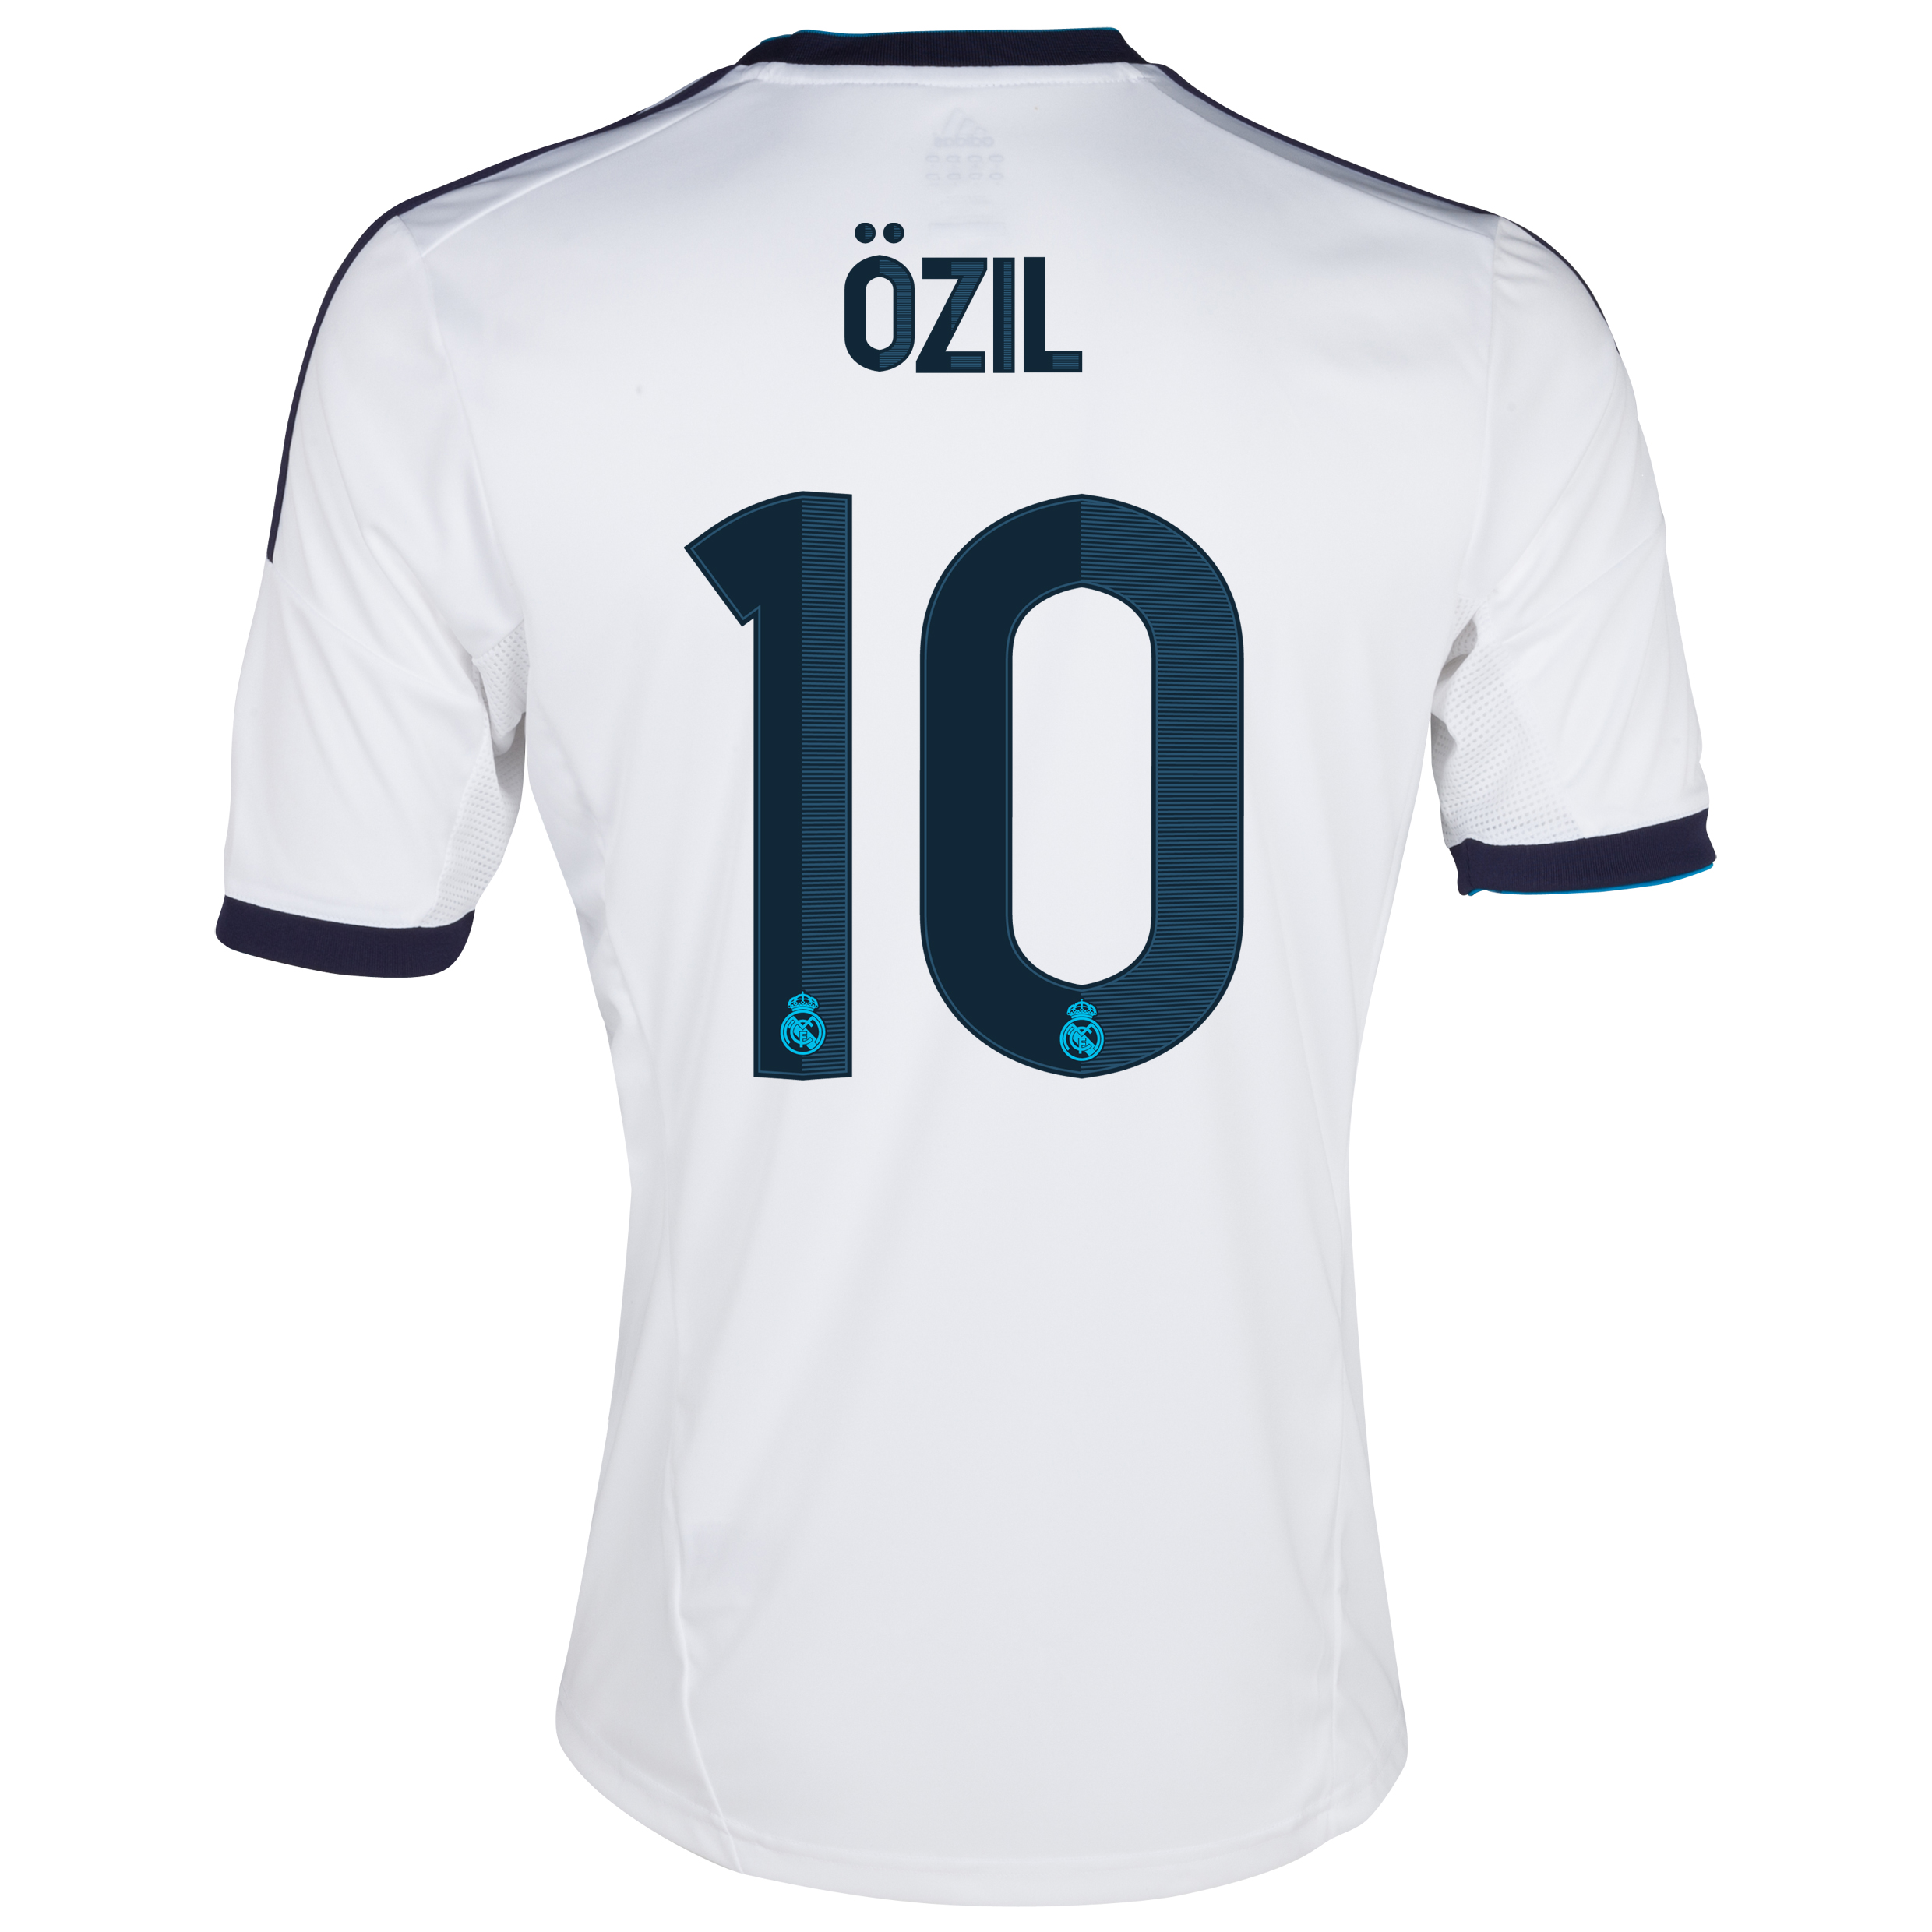 Real Madrid Home Shirt 2012/13 - Youths with zil 10 printing